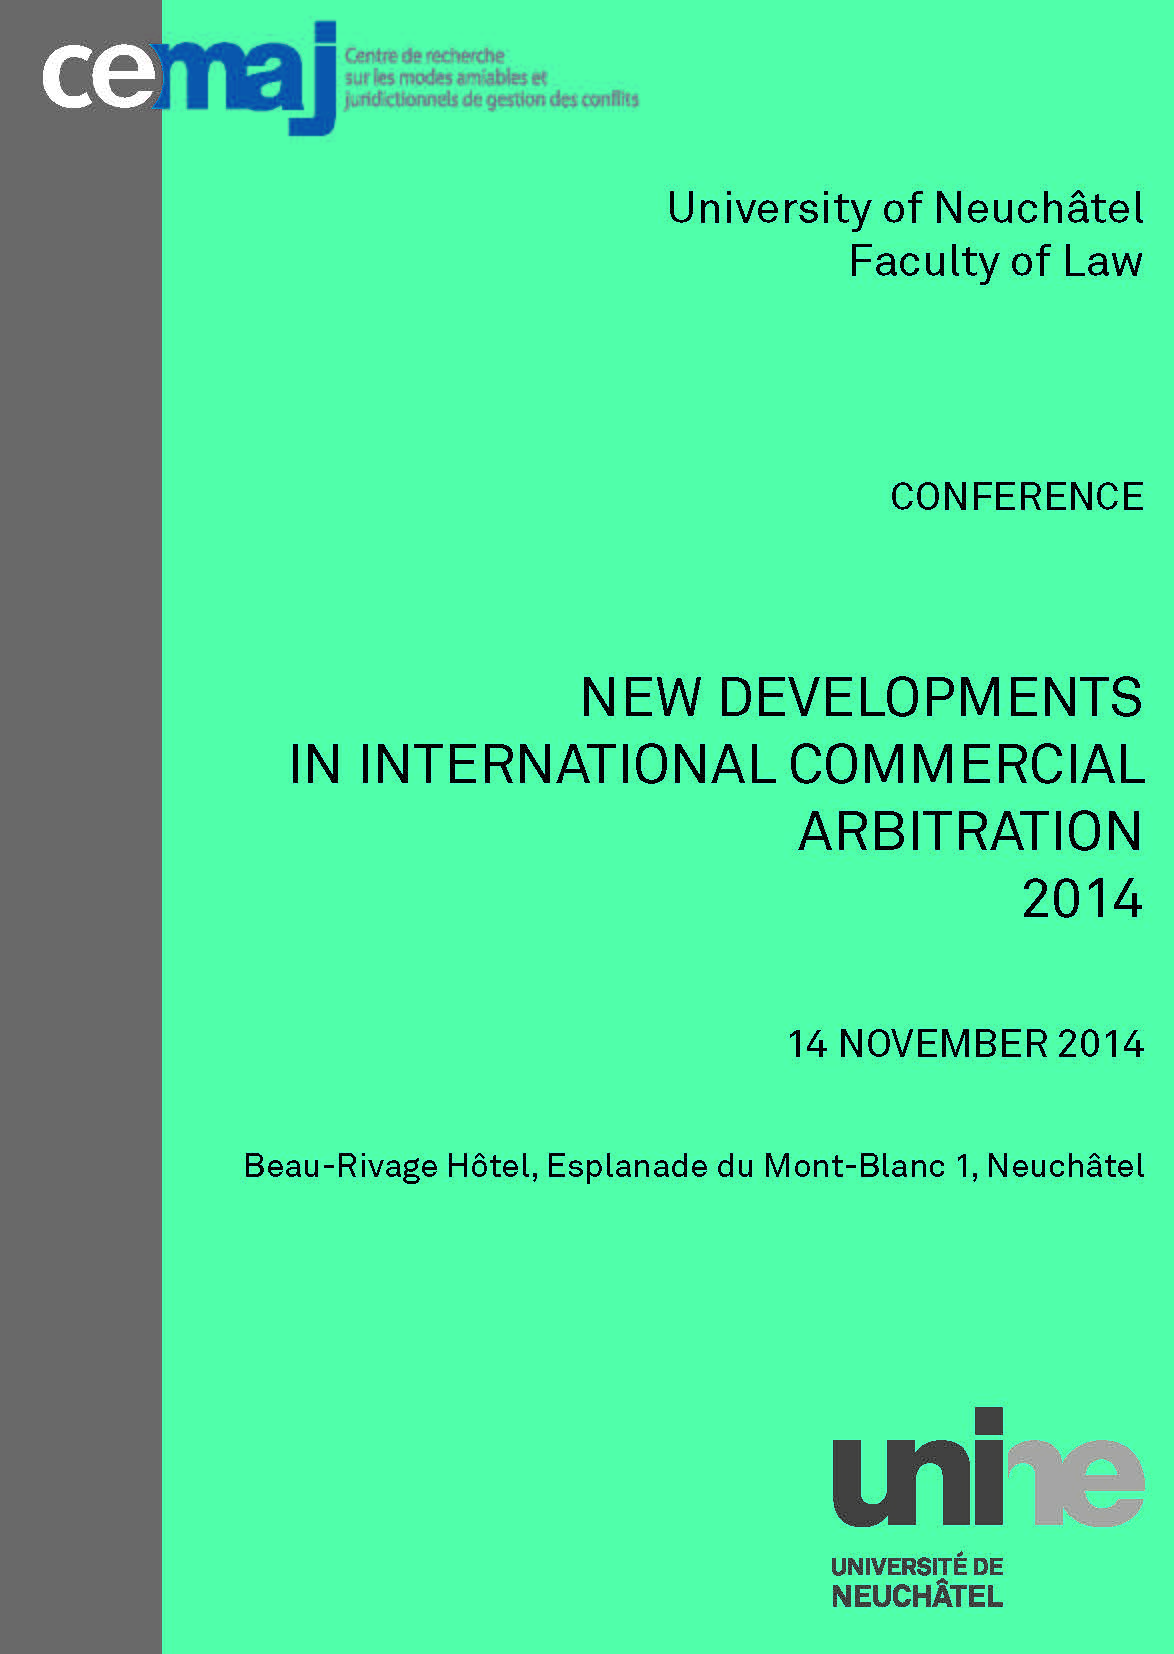 New Developments in International Commercial Arbitration 2014